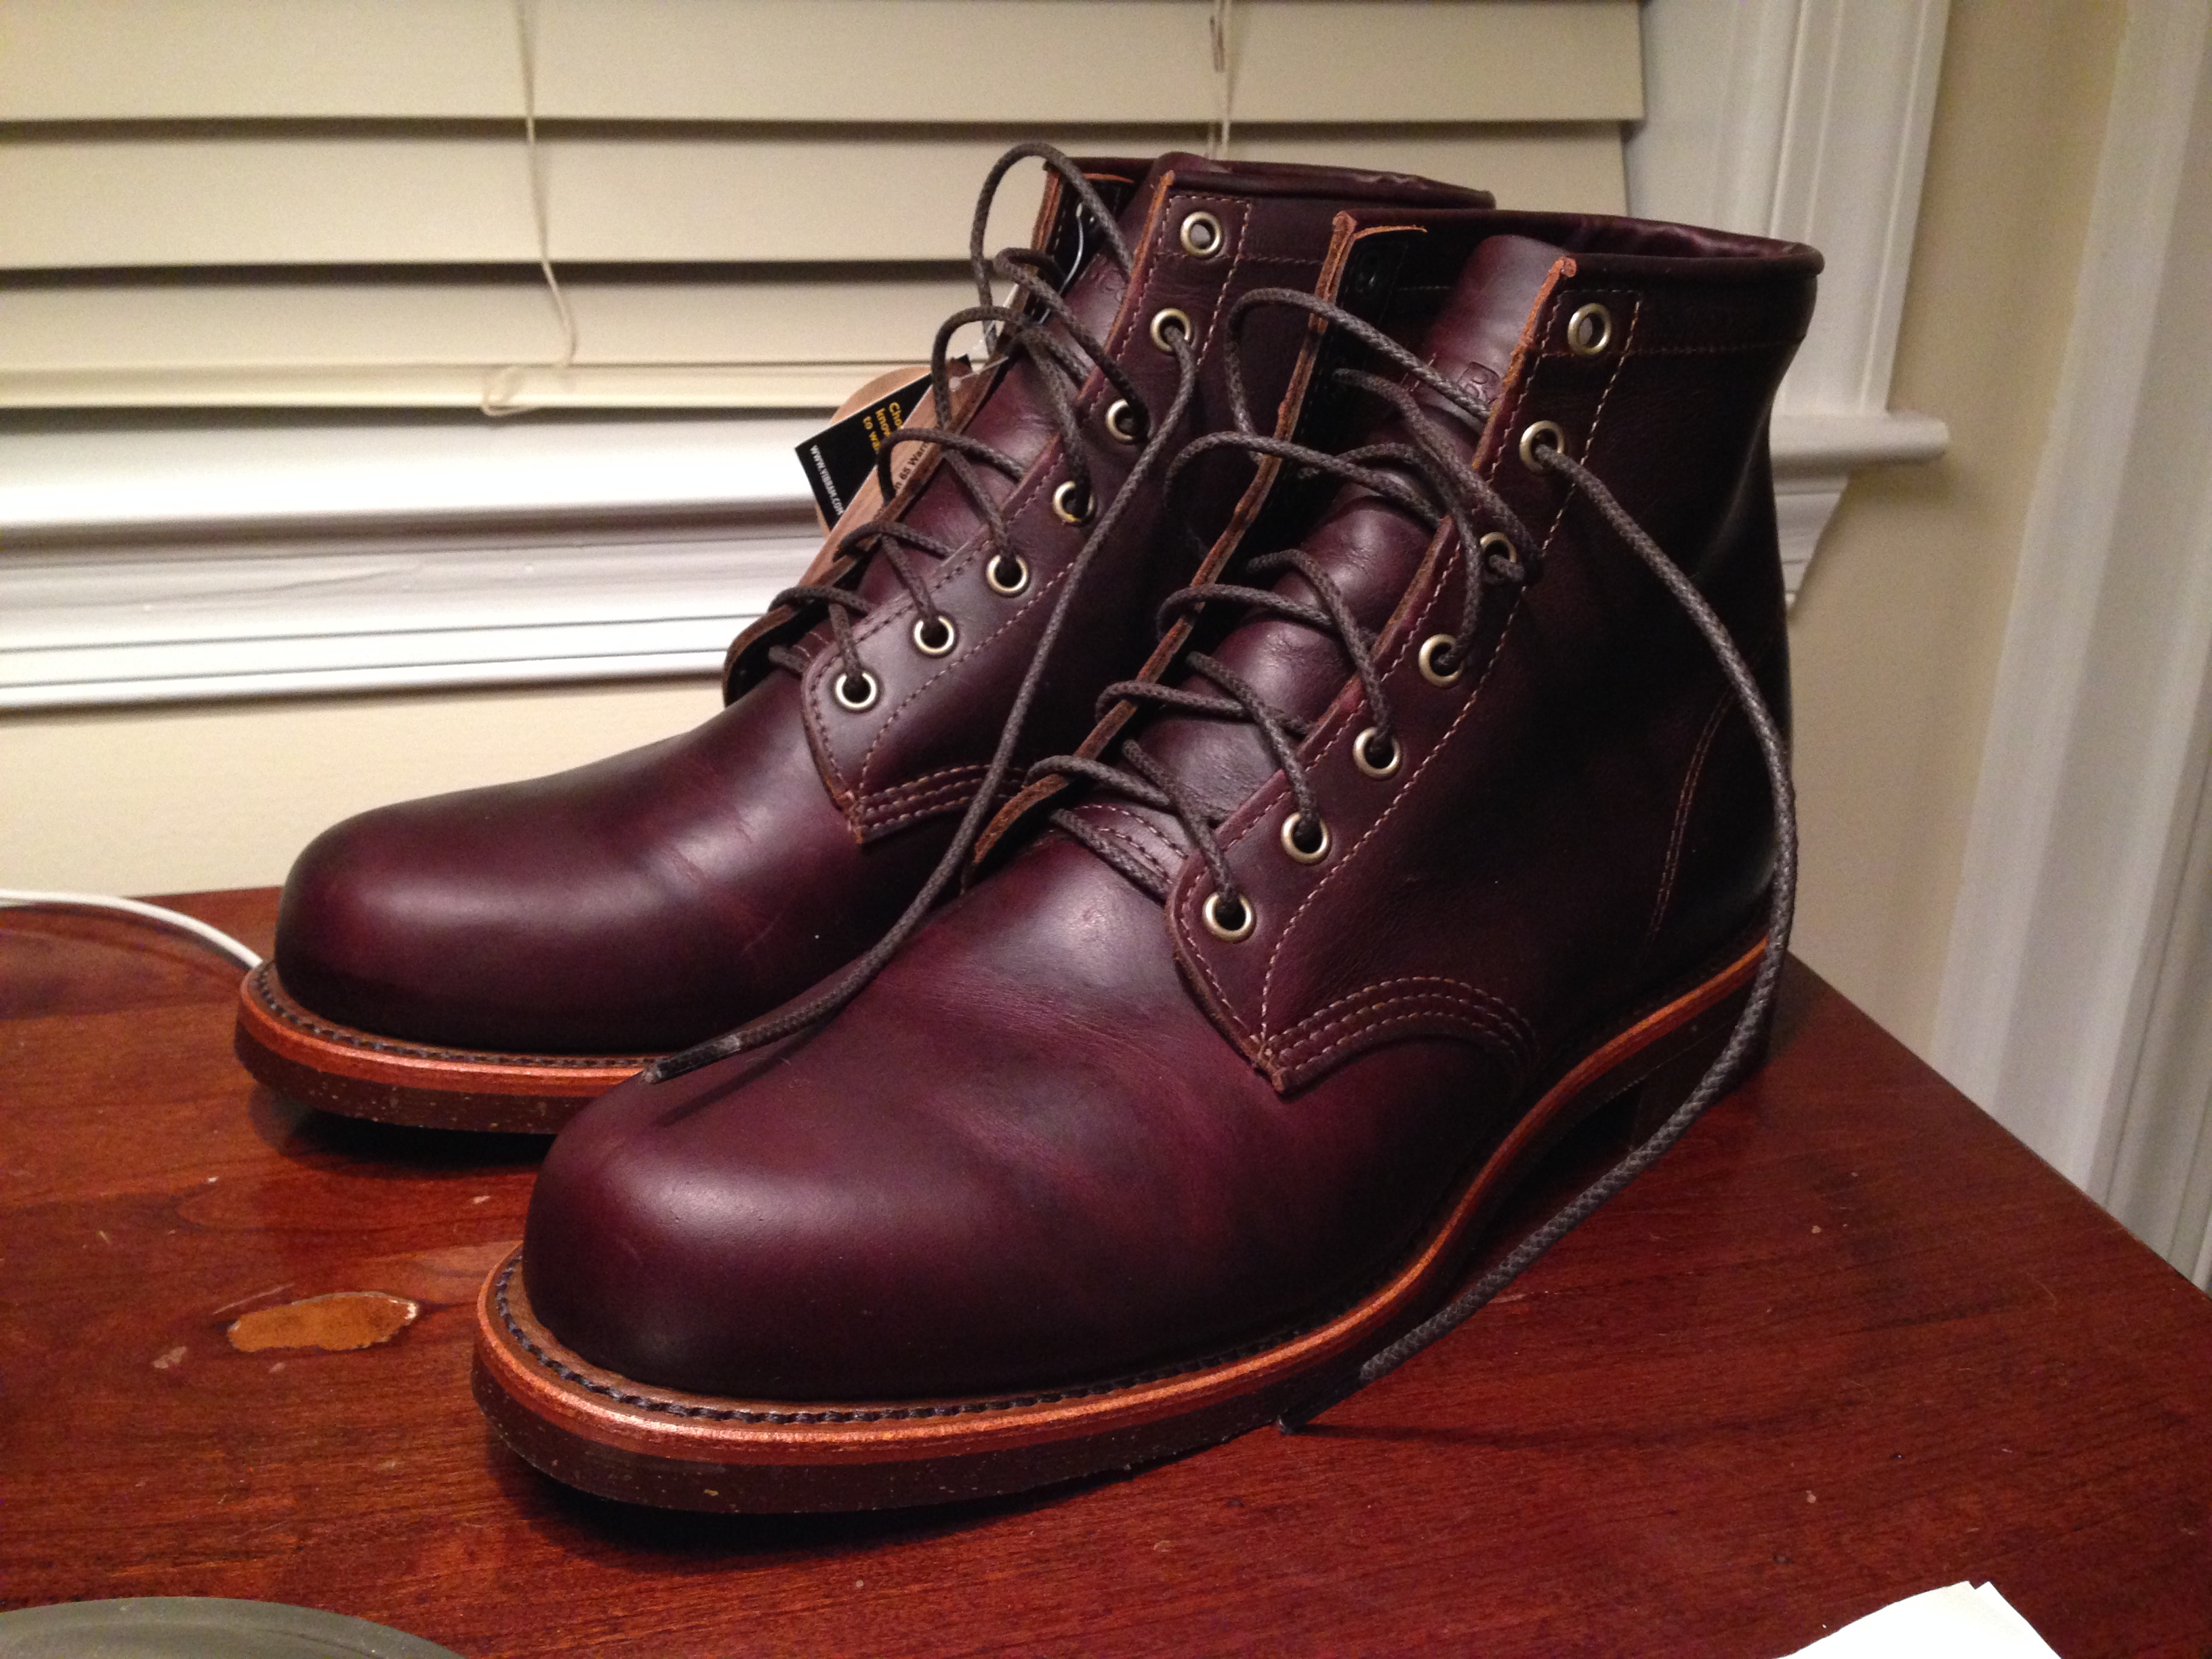 75274524cb4 Calling all LLBean Katahdin Iron Works Boots owners | Page 84 ...